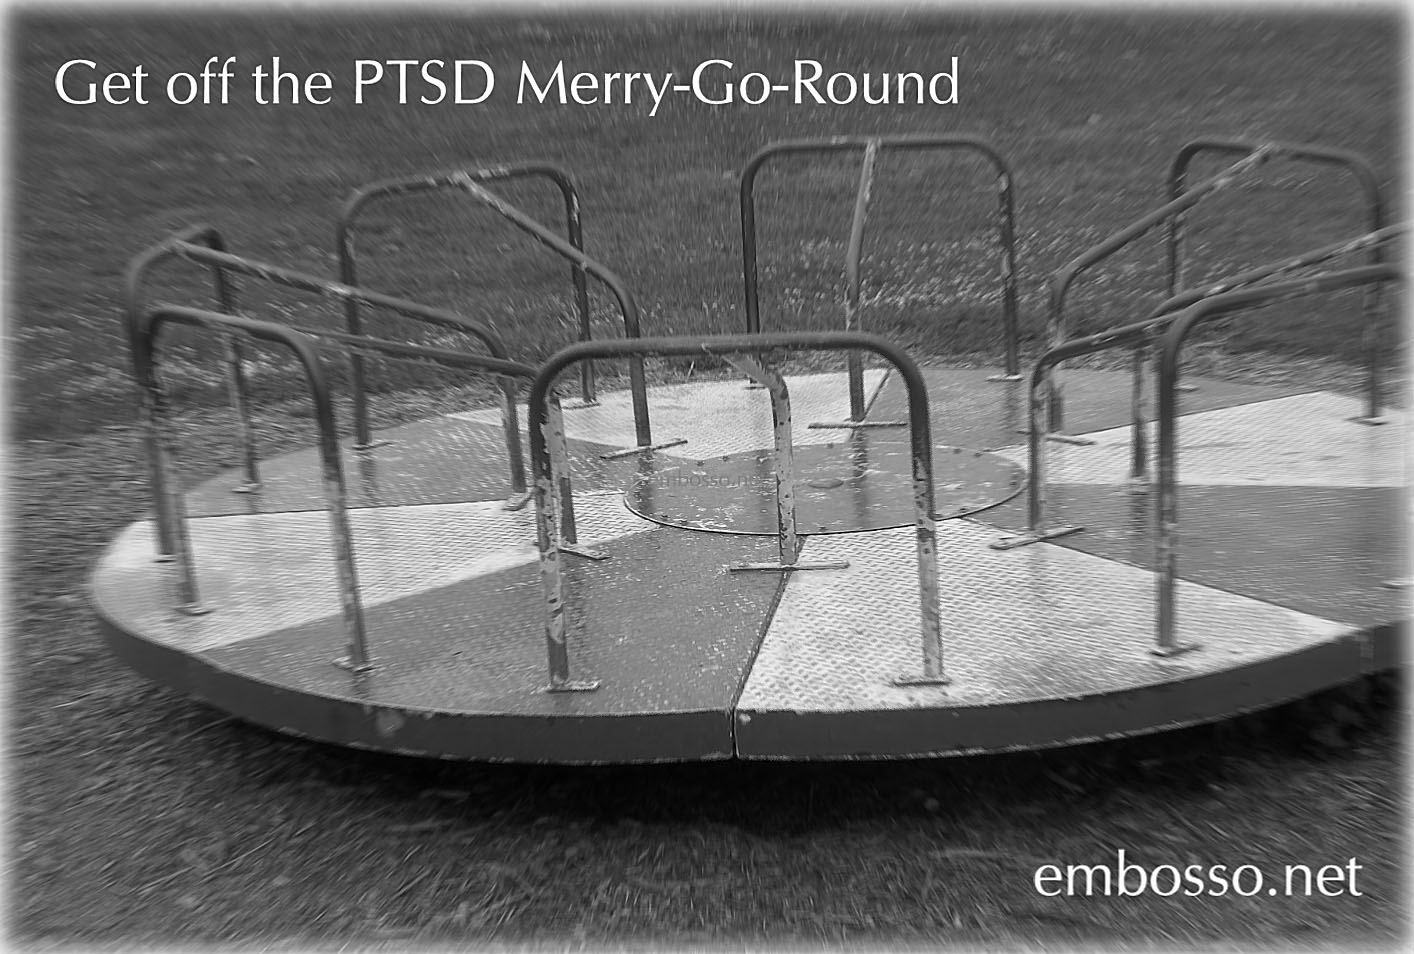 Round and Round… Get Off The PTSD Merry-Go-Round